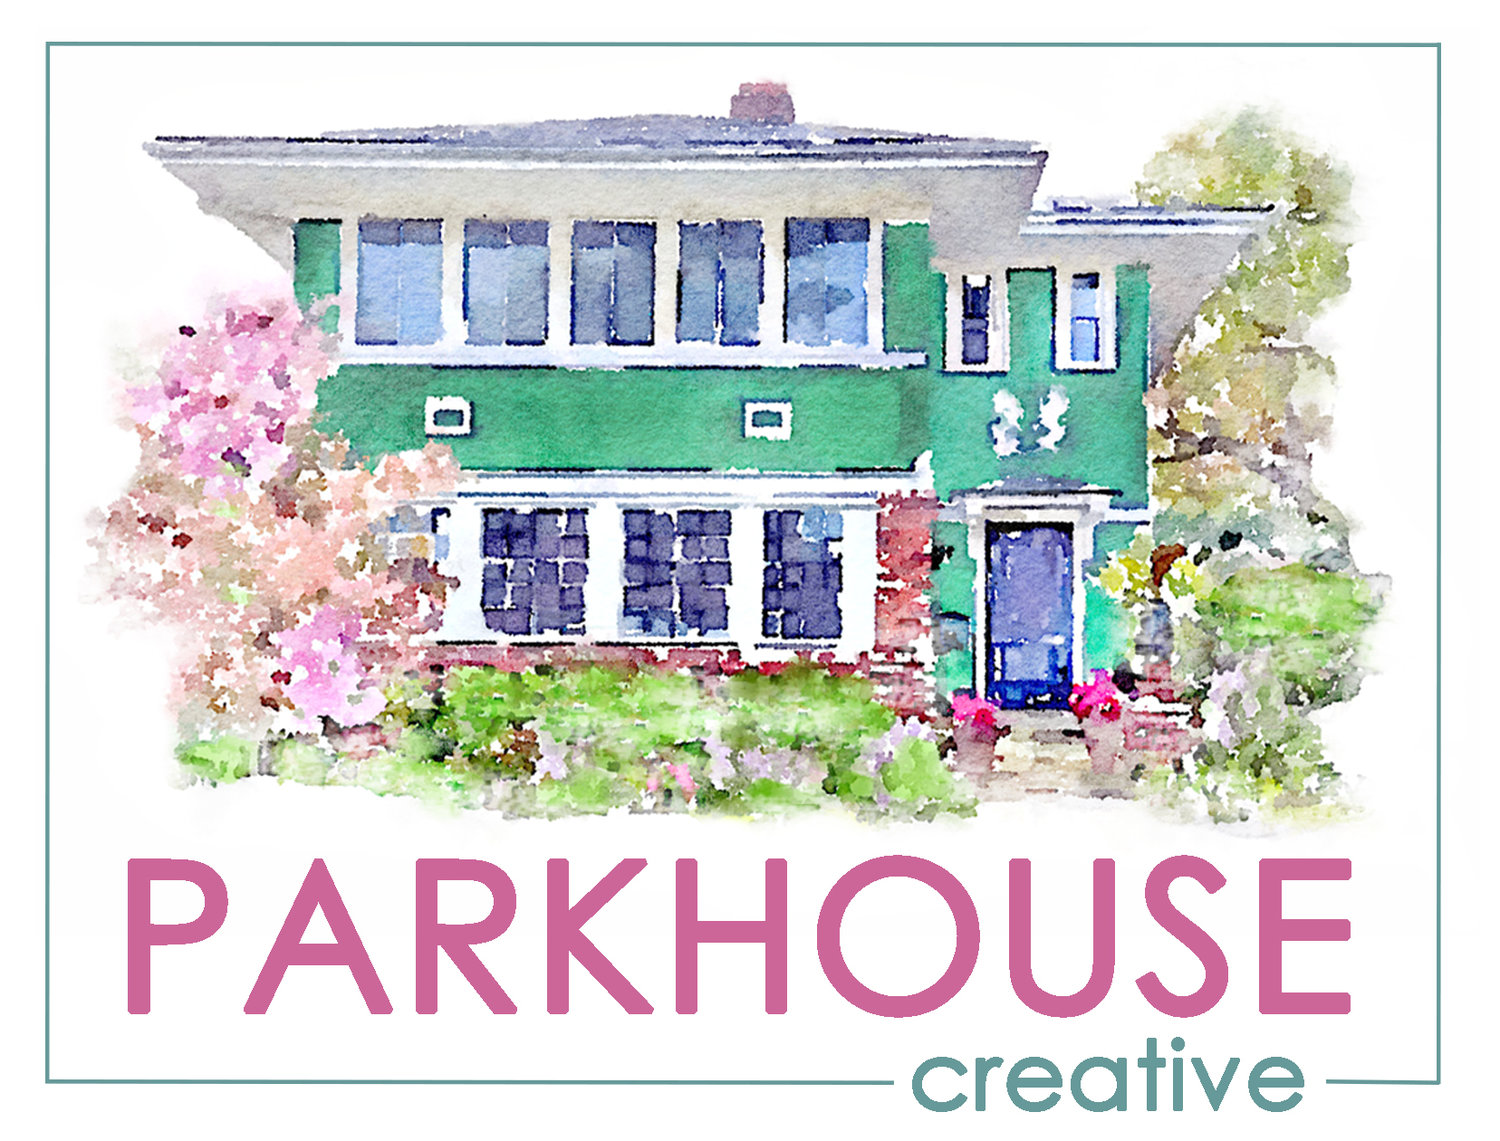 PARKHOUSE creative